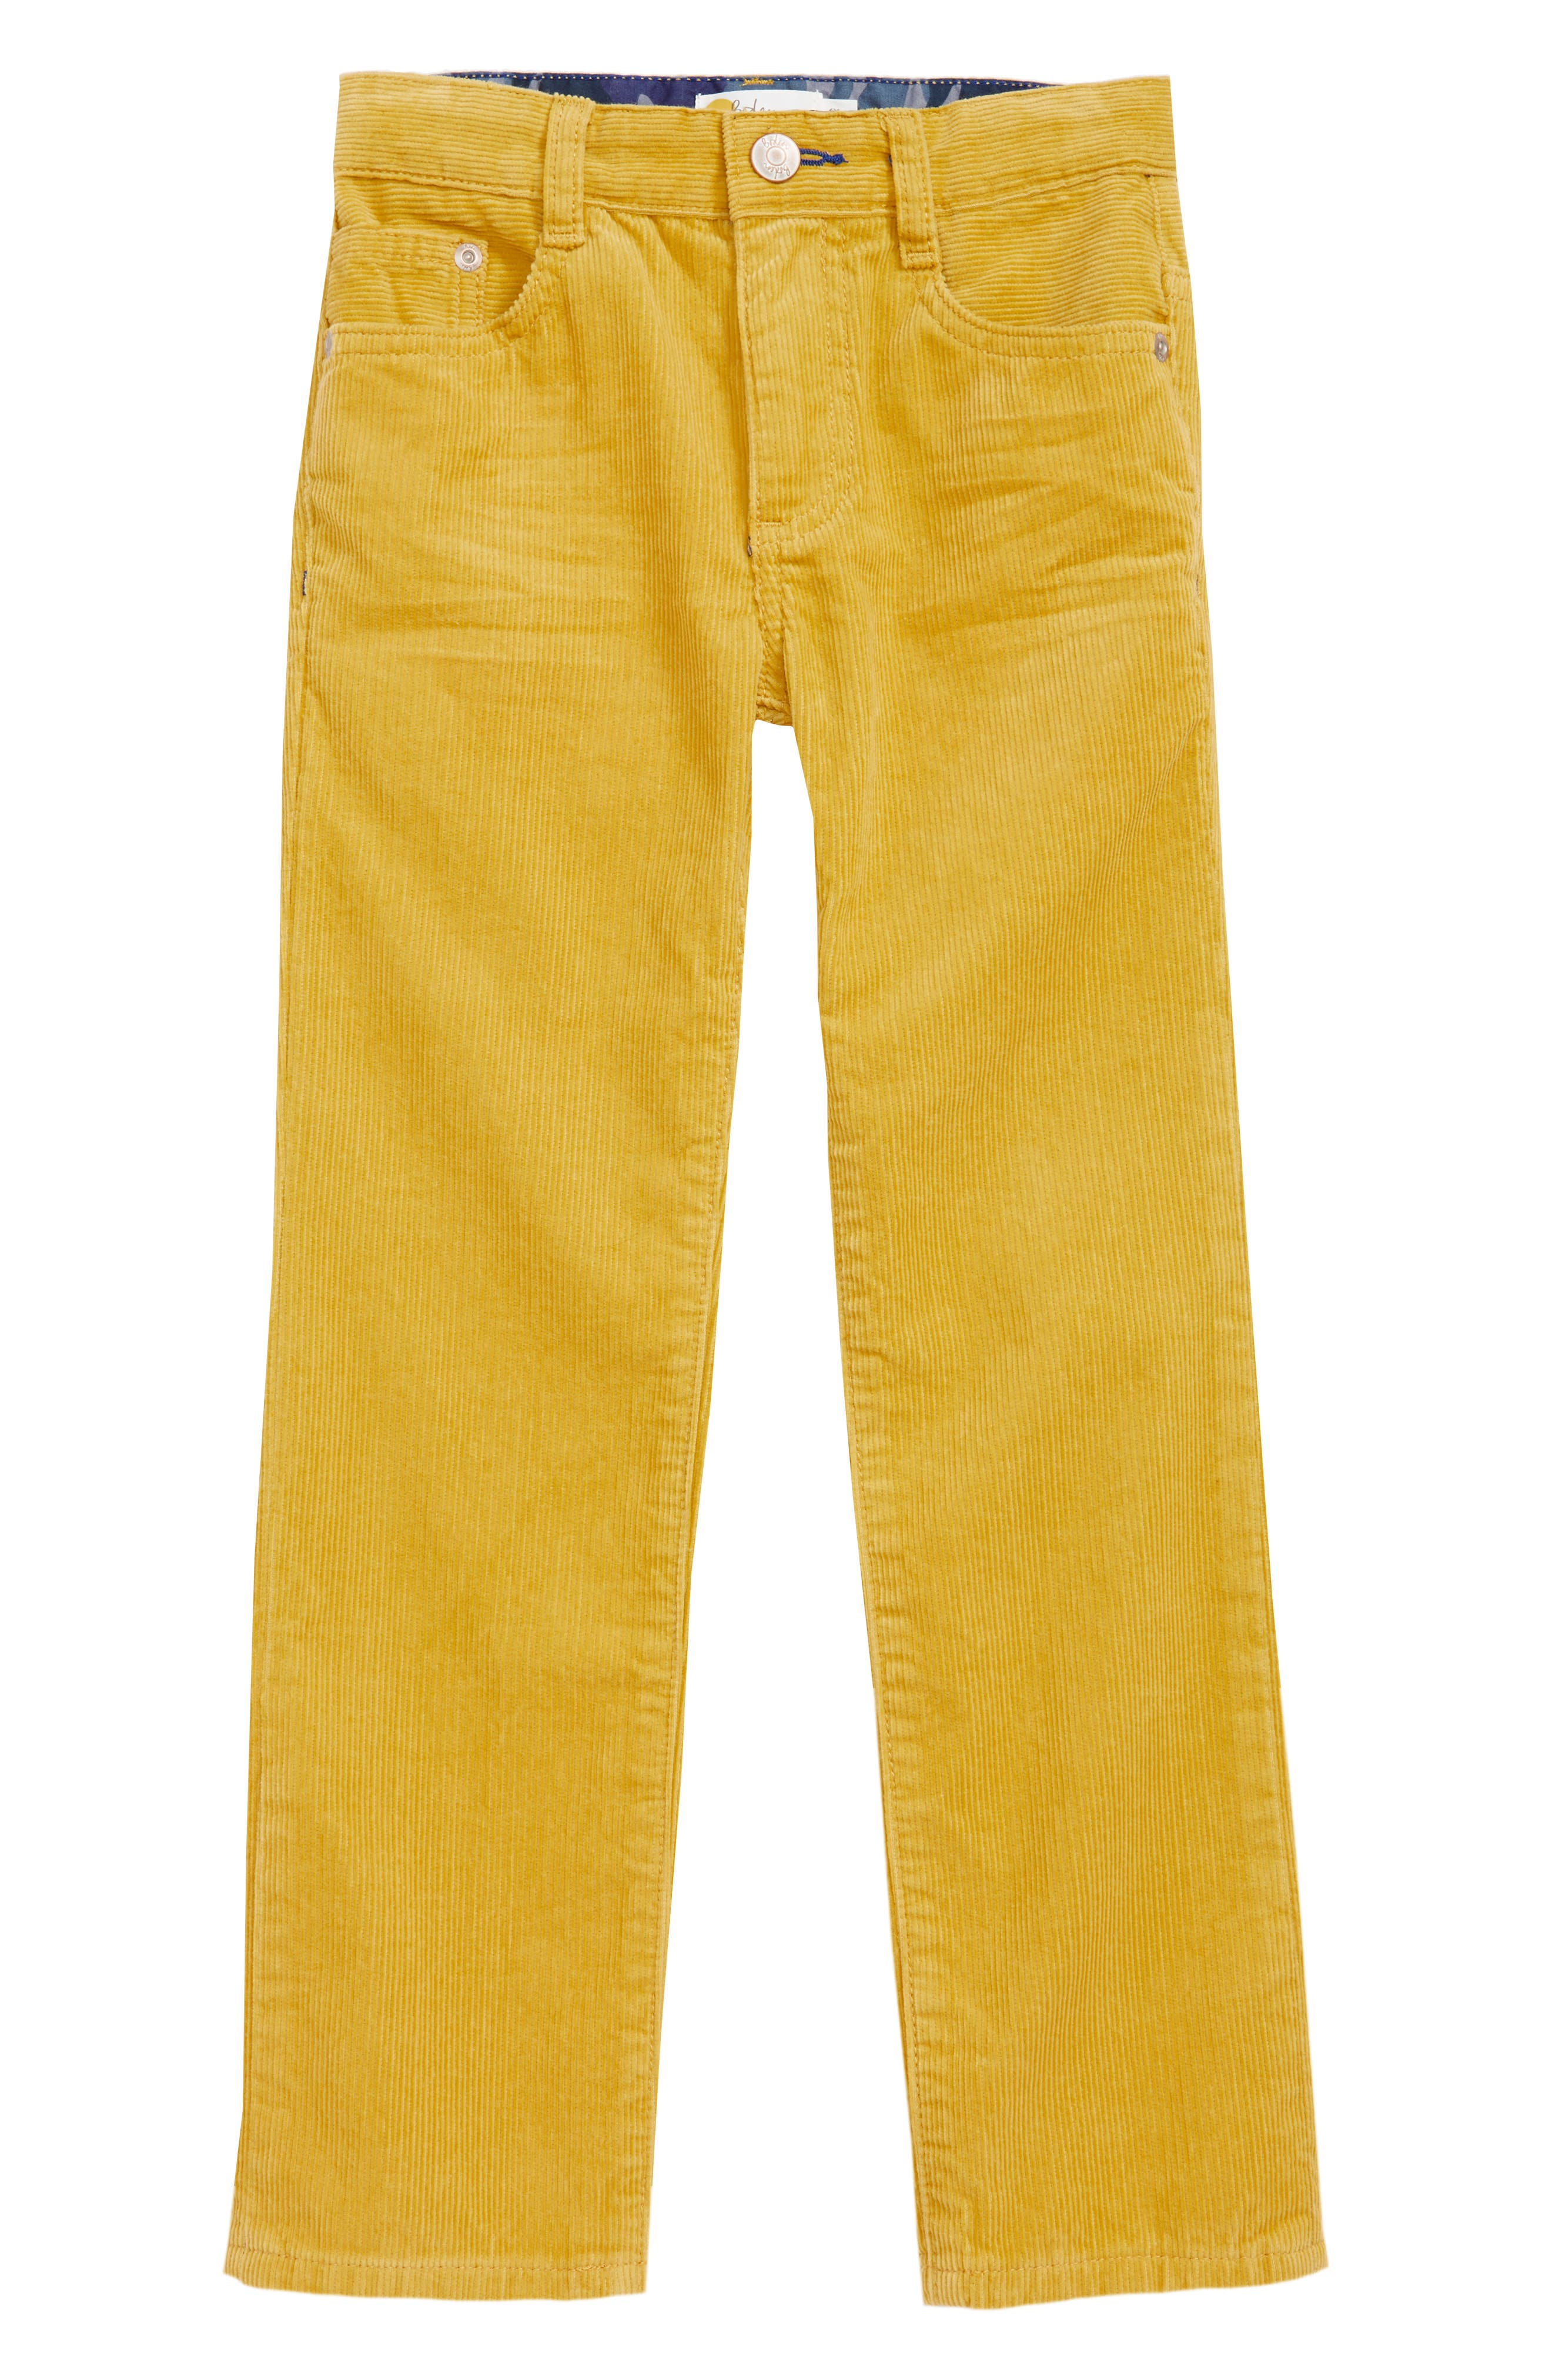 Slim Corduroy Jeans,                         Main,                         color, SOFT LIME YELLOW